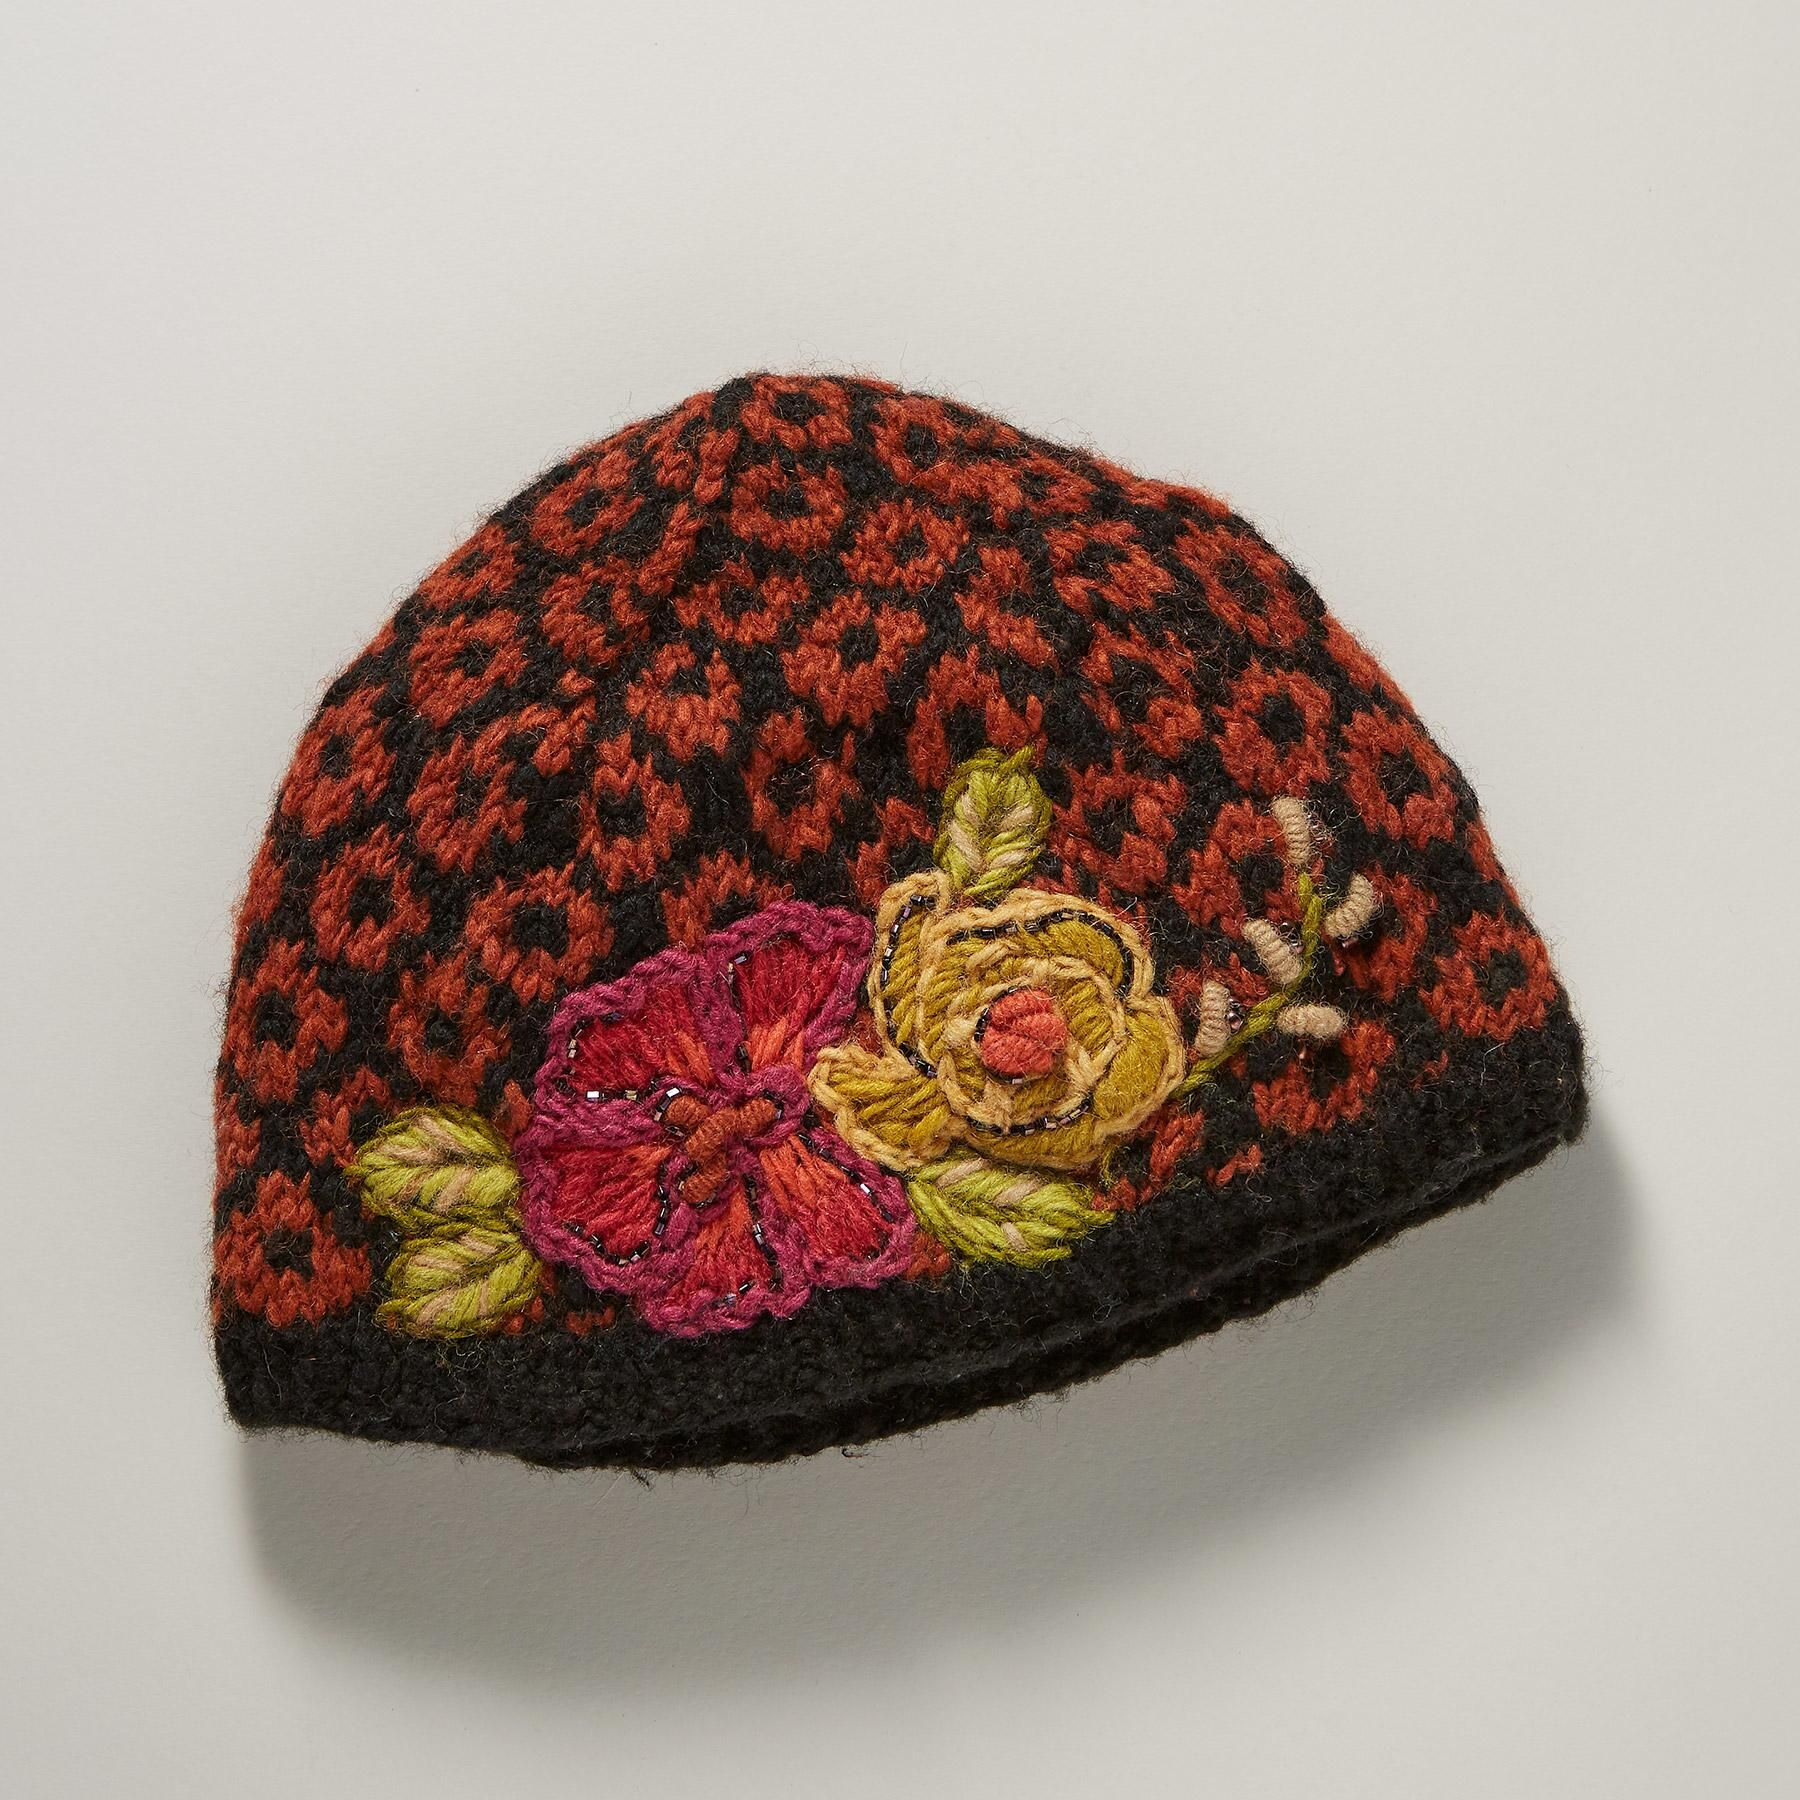 WREN SONG HAT -- On our floral wool hat e5c98177a08